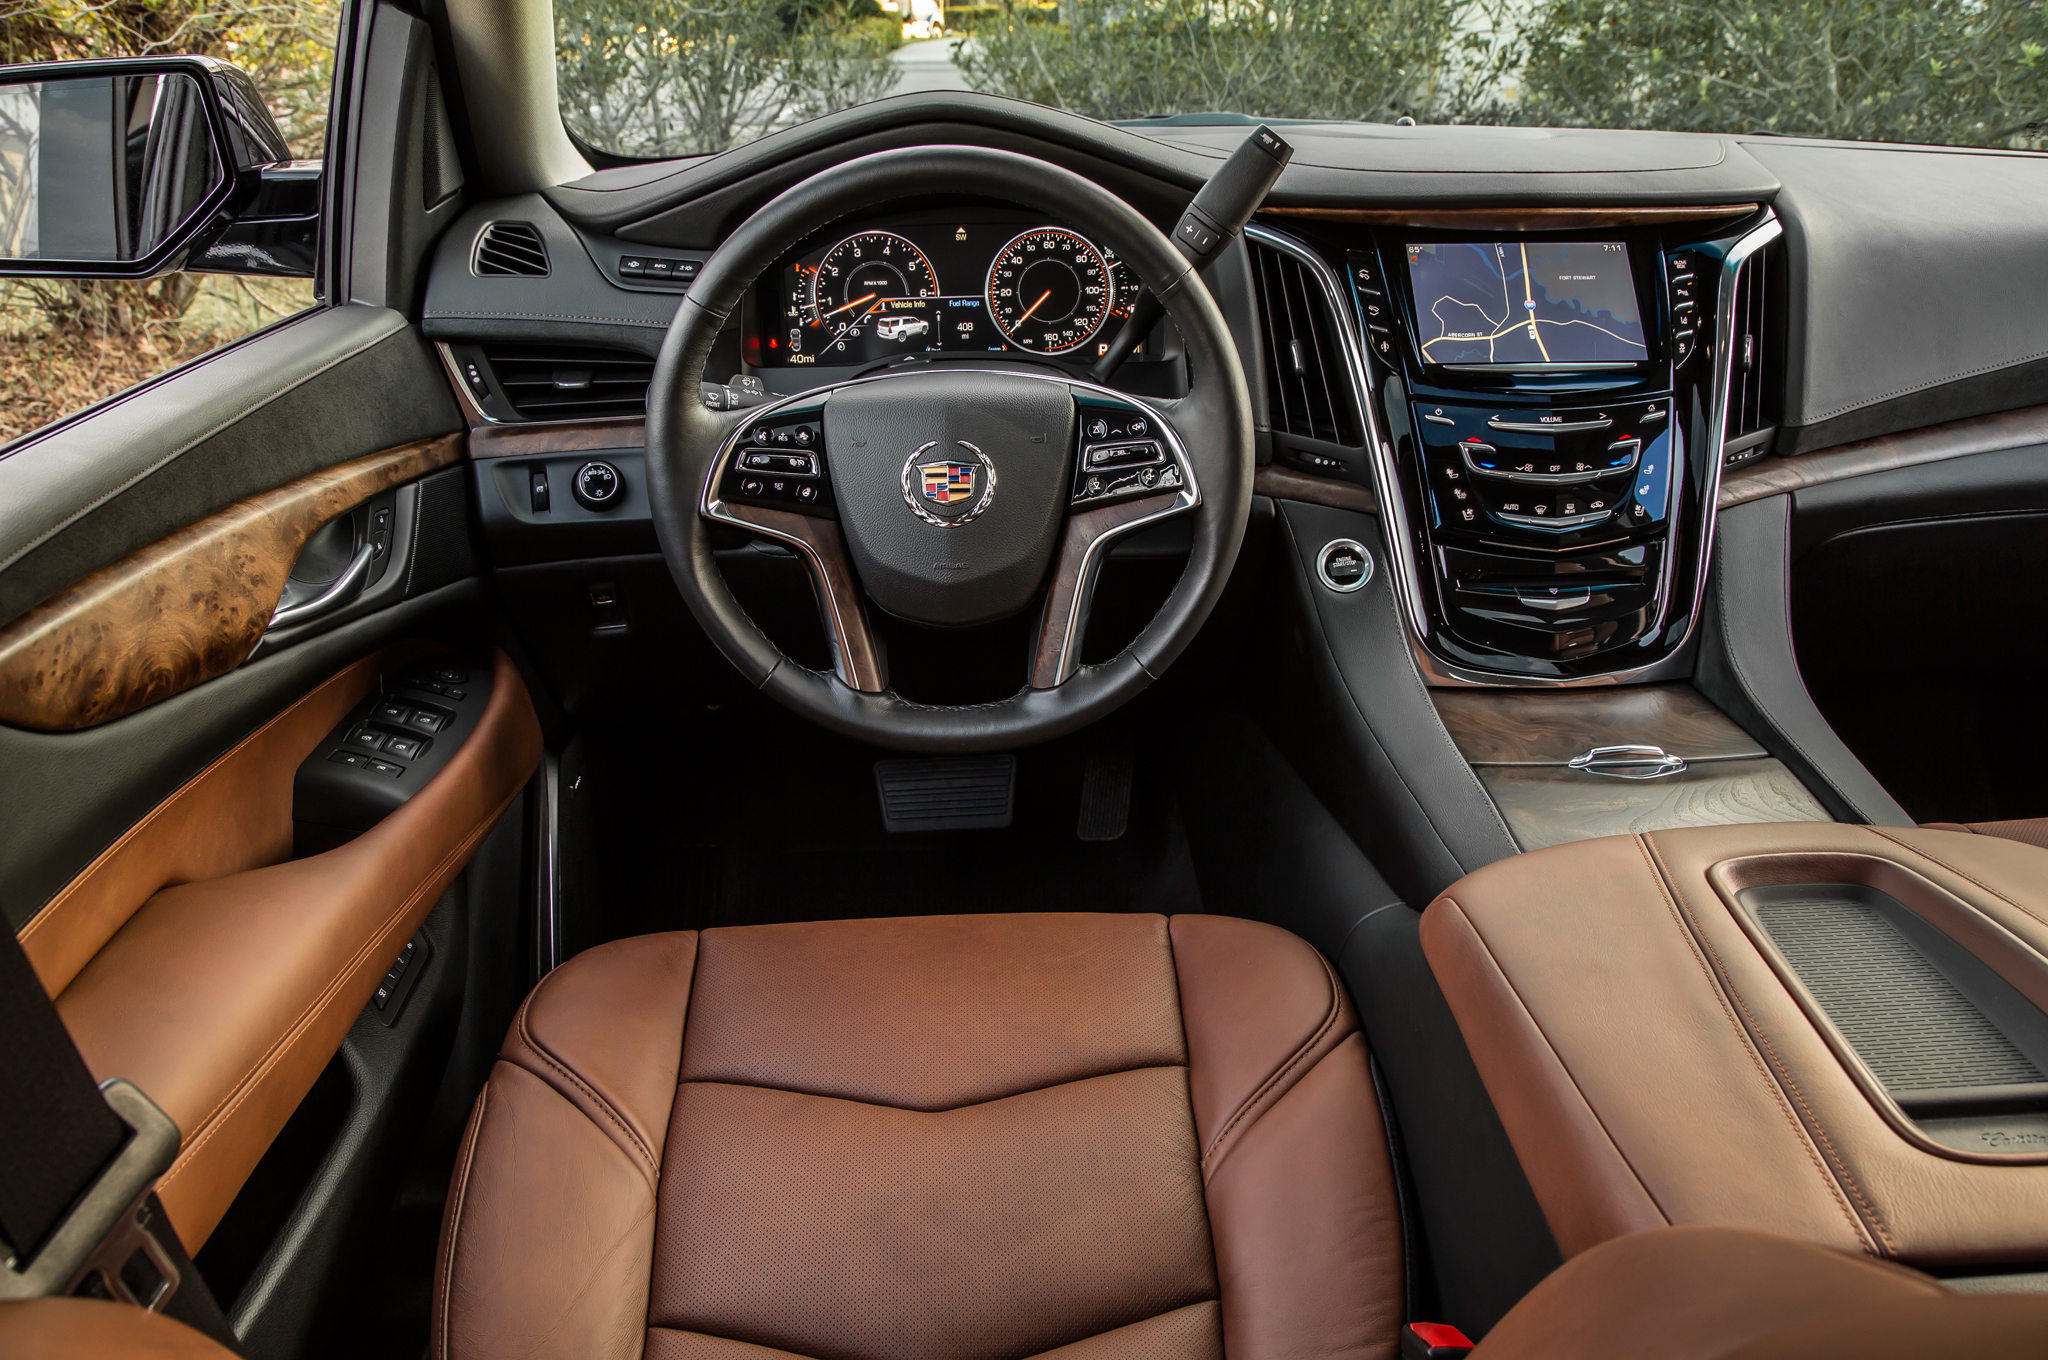 2015 cadillac escalade cockpit 458 cars performance. Black Bedroom Furniture Sets. Home Design Ideas